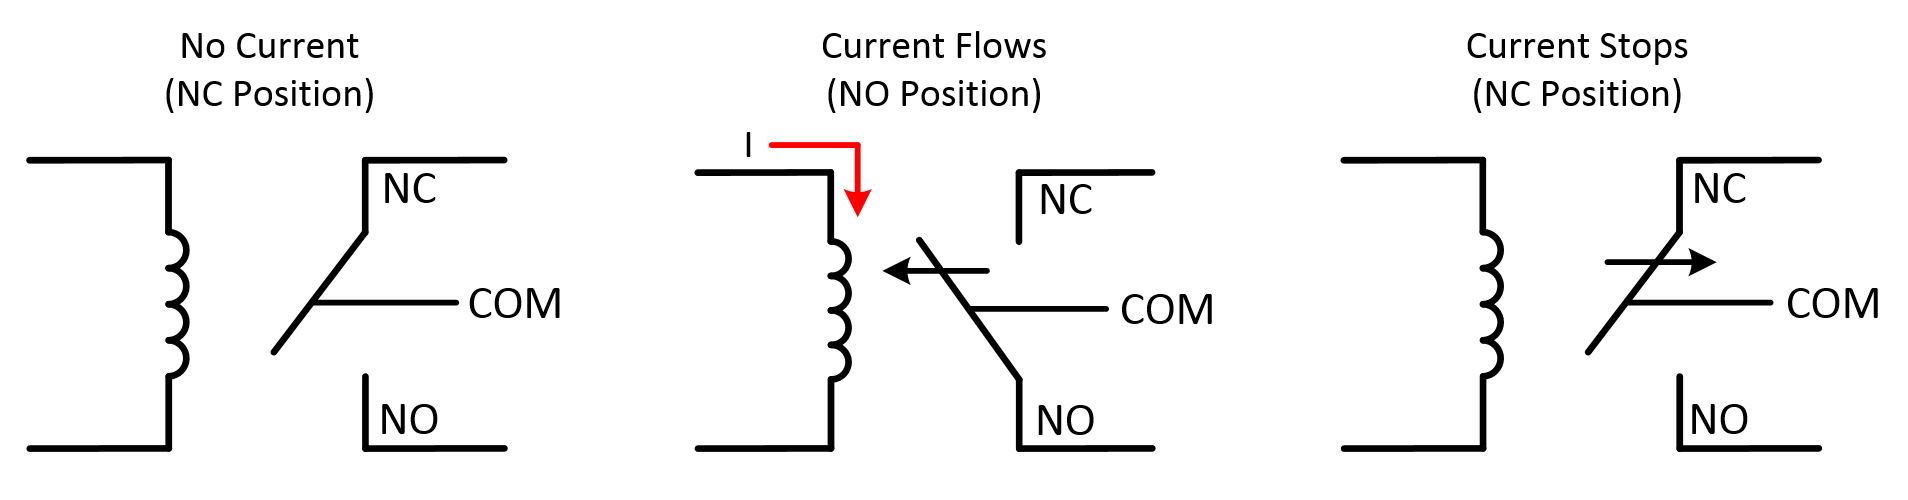 Comm Wiring Diagram For Control Switches Switch Types And Common Terminology National Instruments